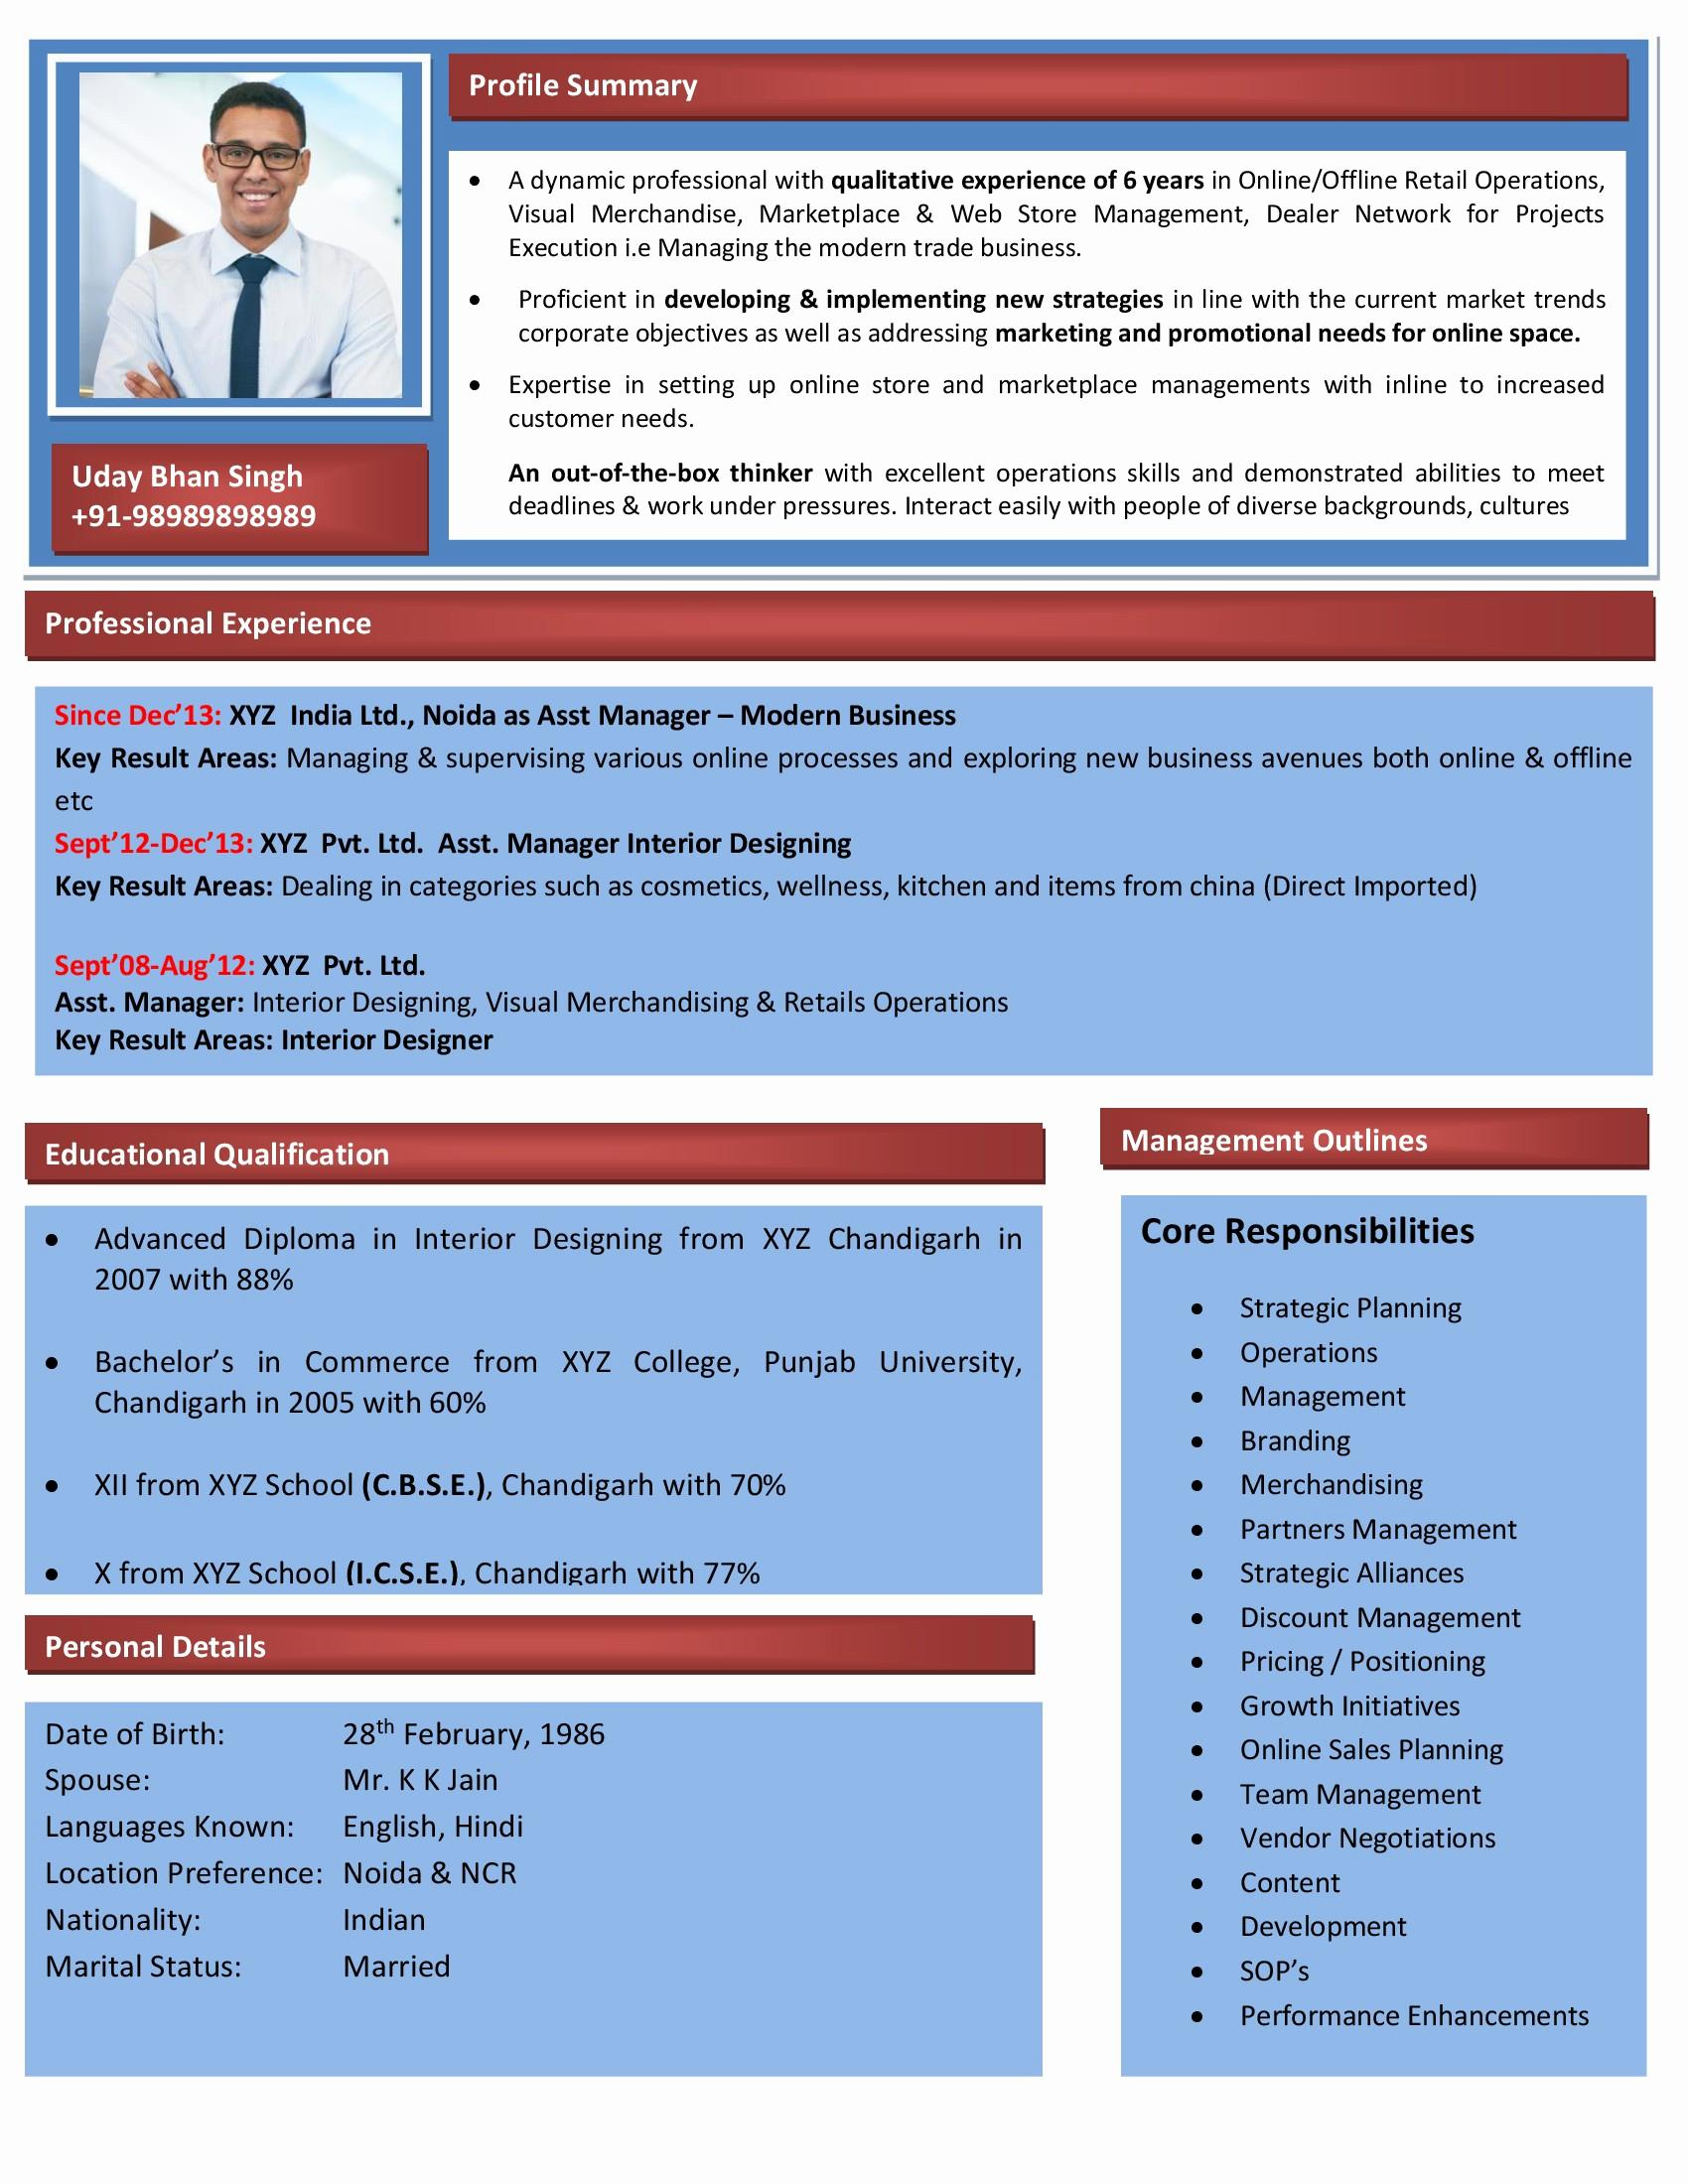 Interior Design Resume Template - Web Designer Resume Word format Inspirational Best Pr Resume